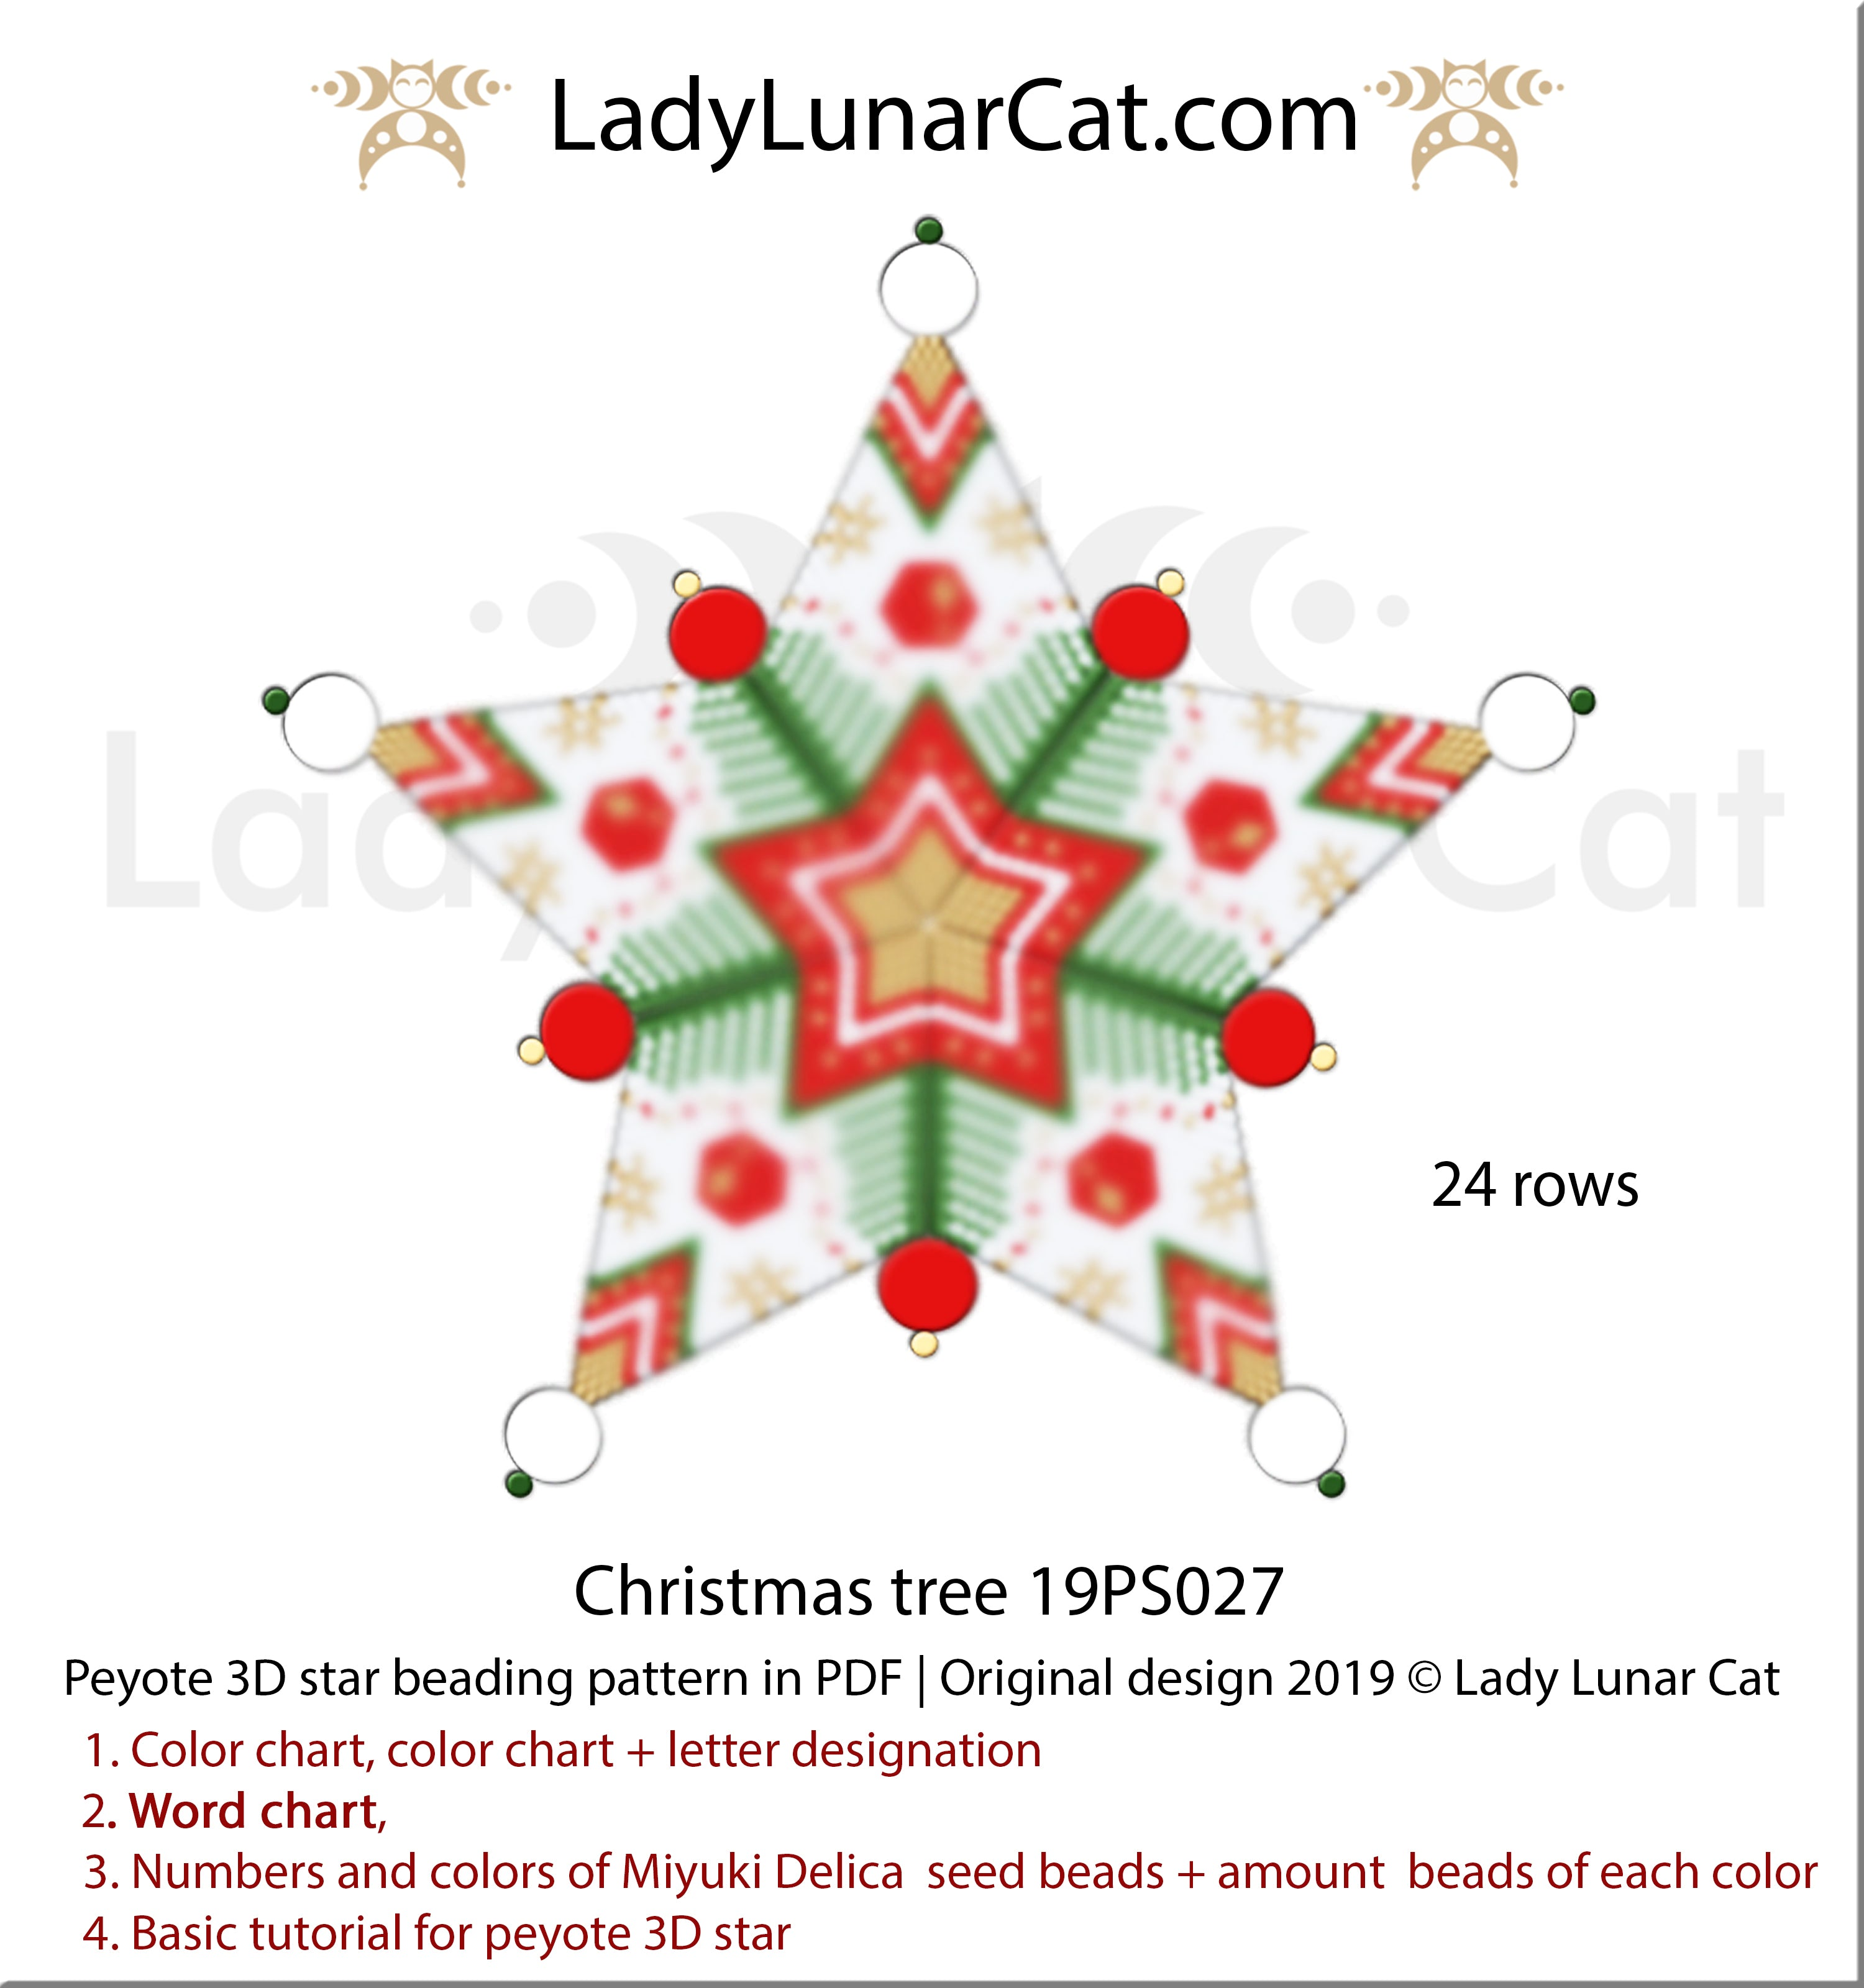 3d peyote star patterns for beading Christmas tree by Lady Lunar Cat | Seed beads tutorial for 3D beaded star